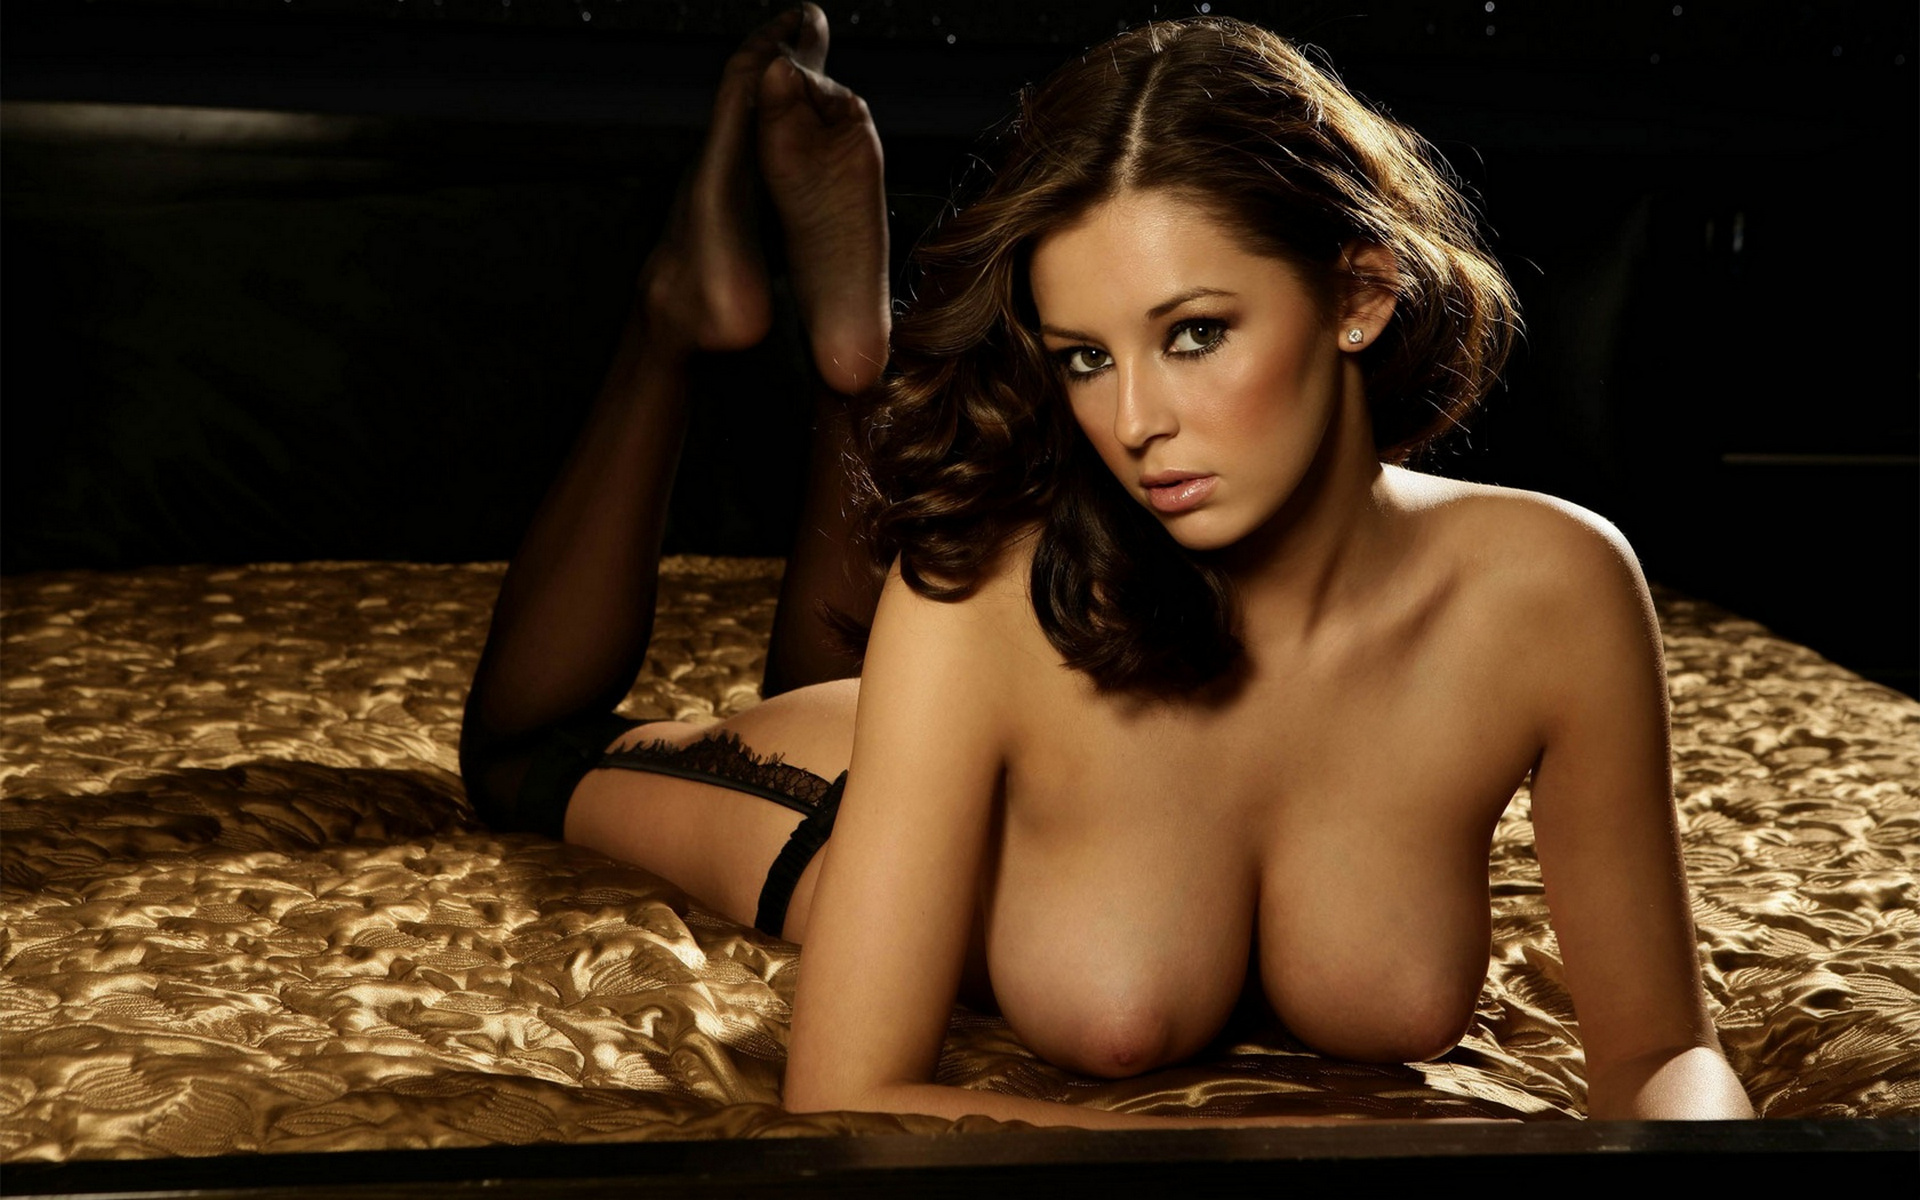 keeley hazell in bed